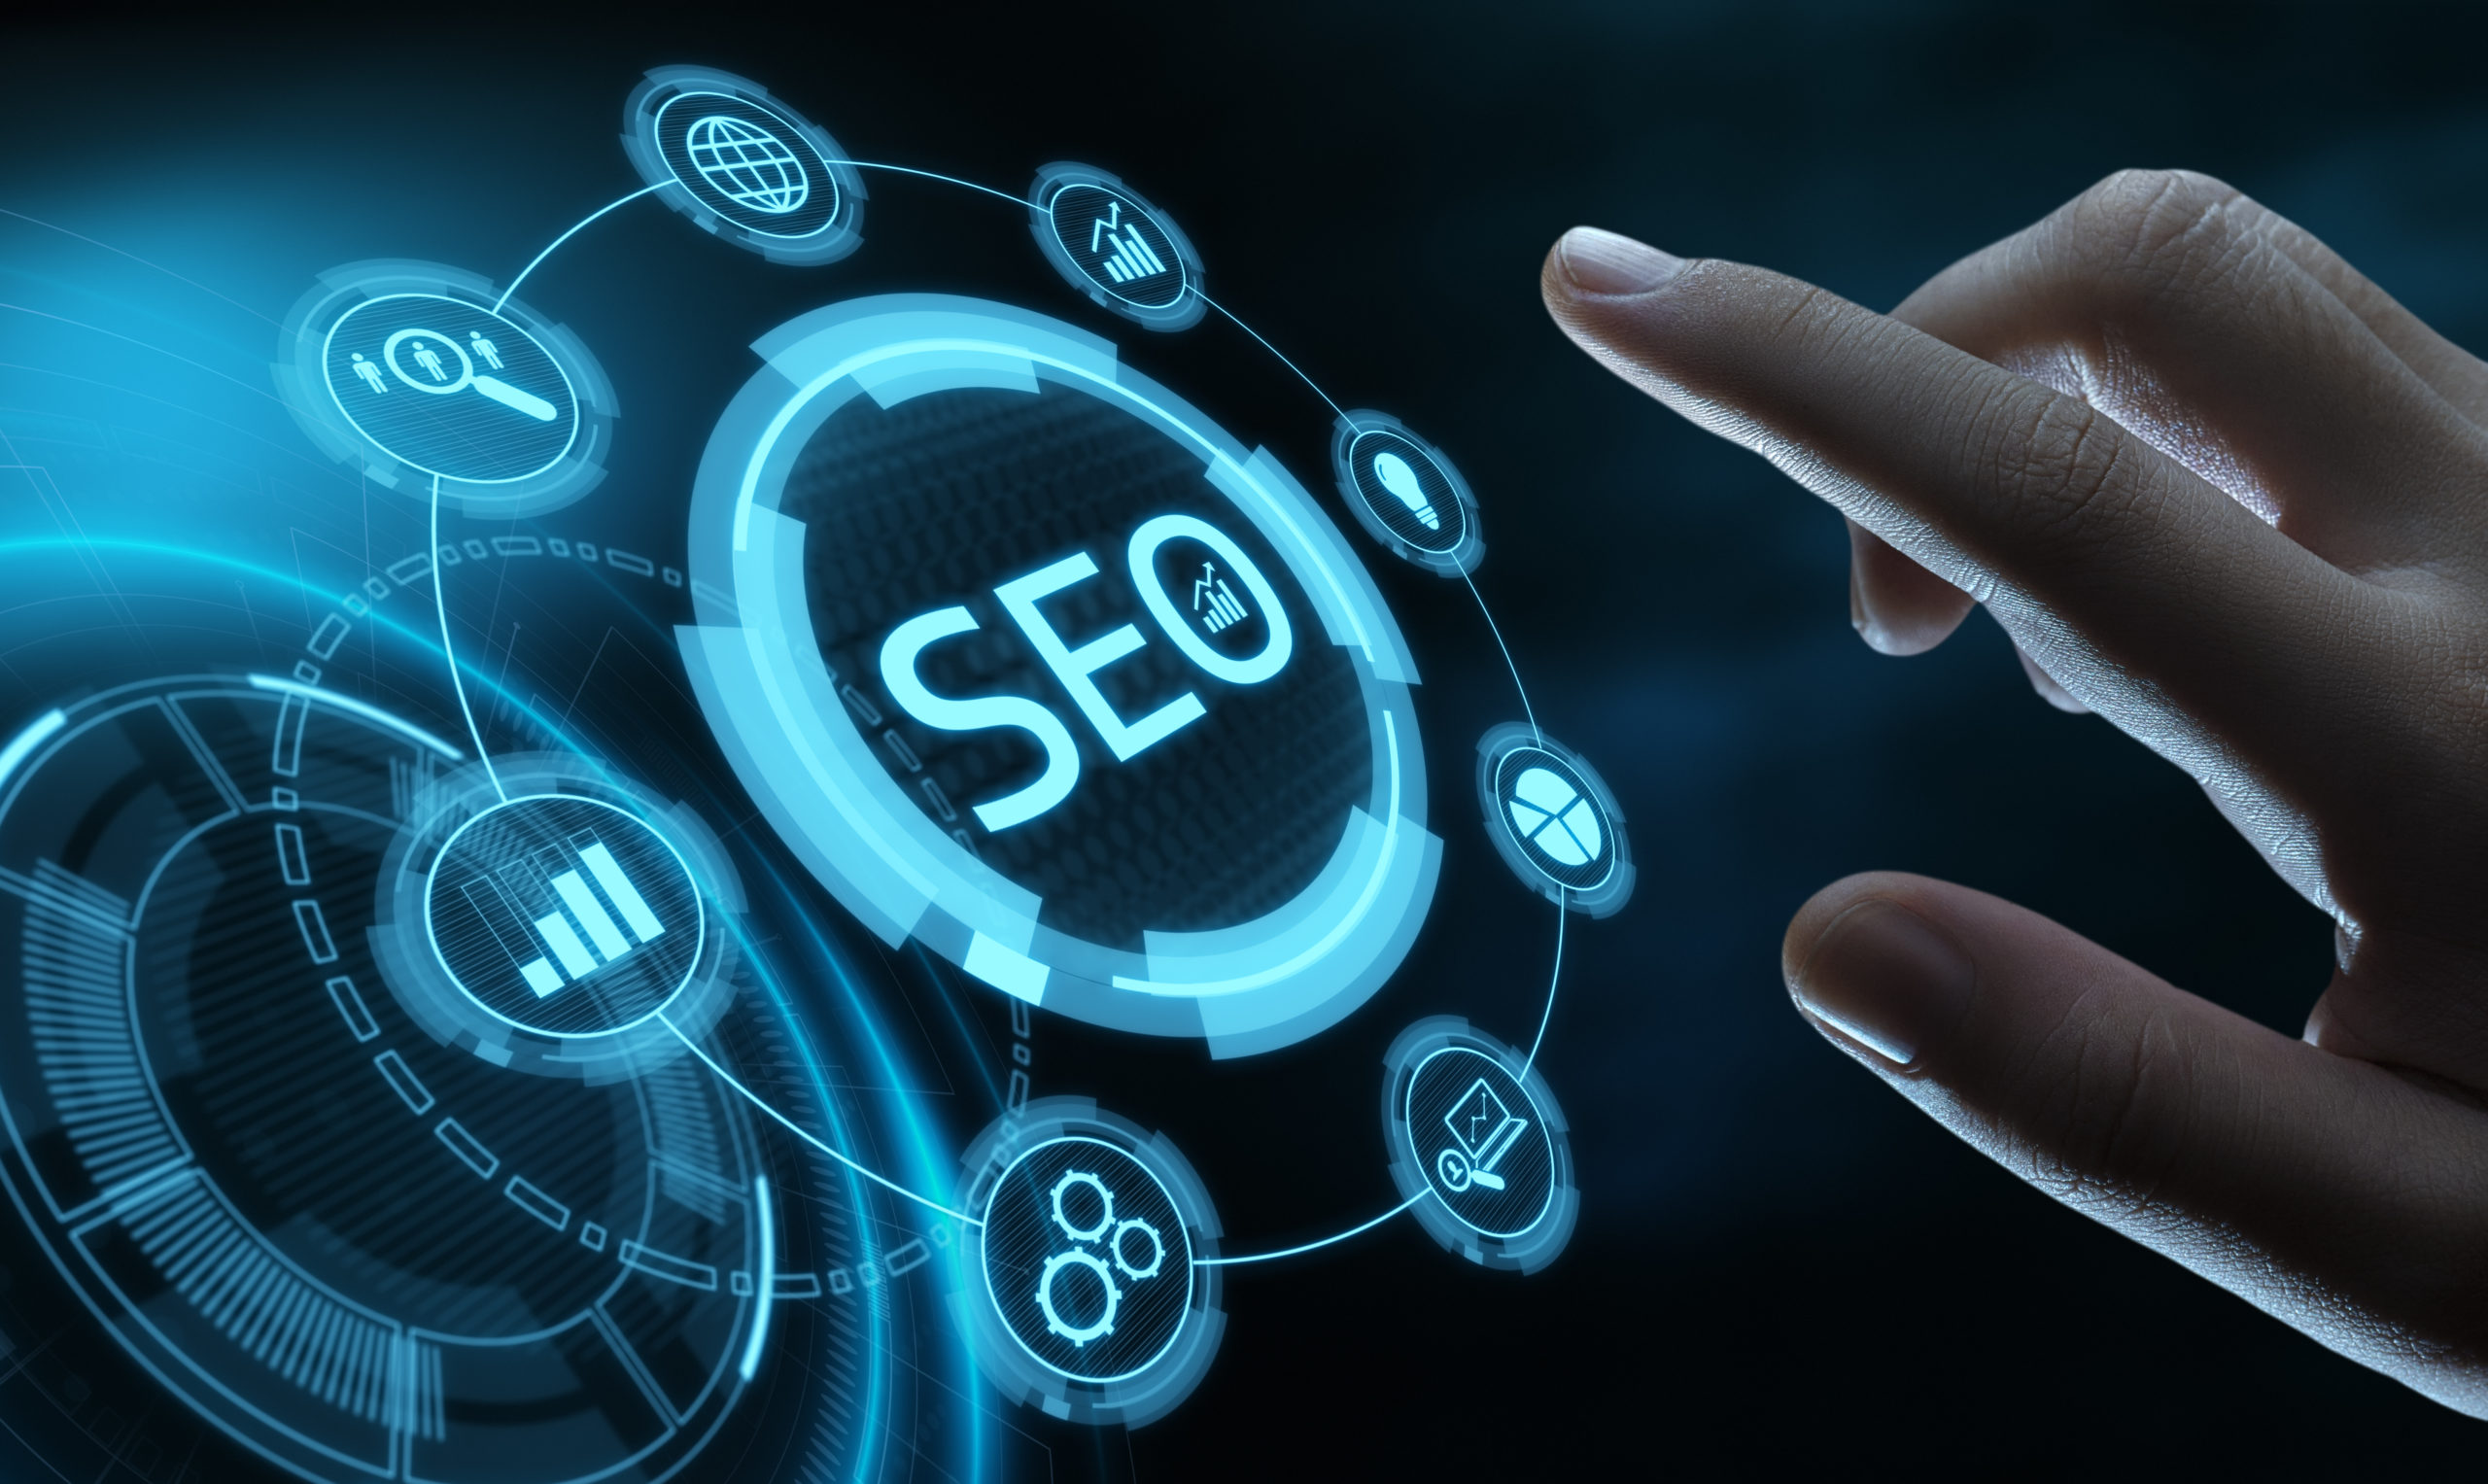 4 Essential Things You Should Have In Your Web Design To Ensure Your SEO Ranking